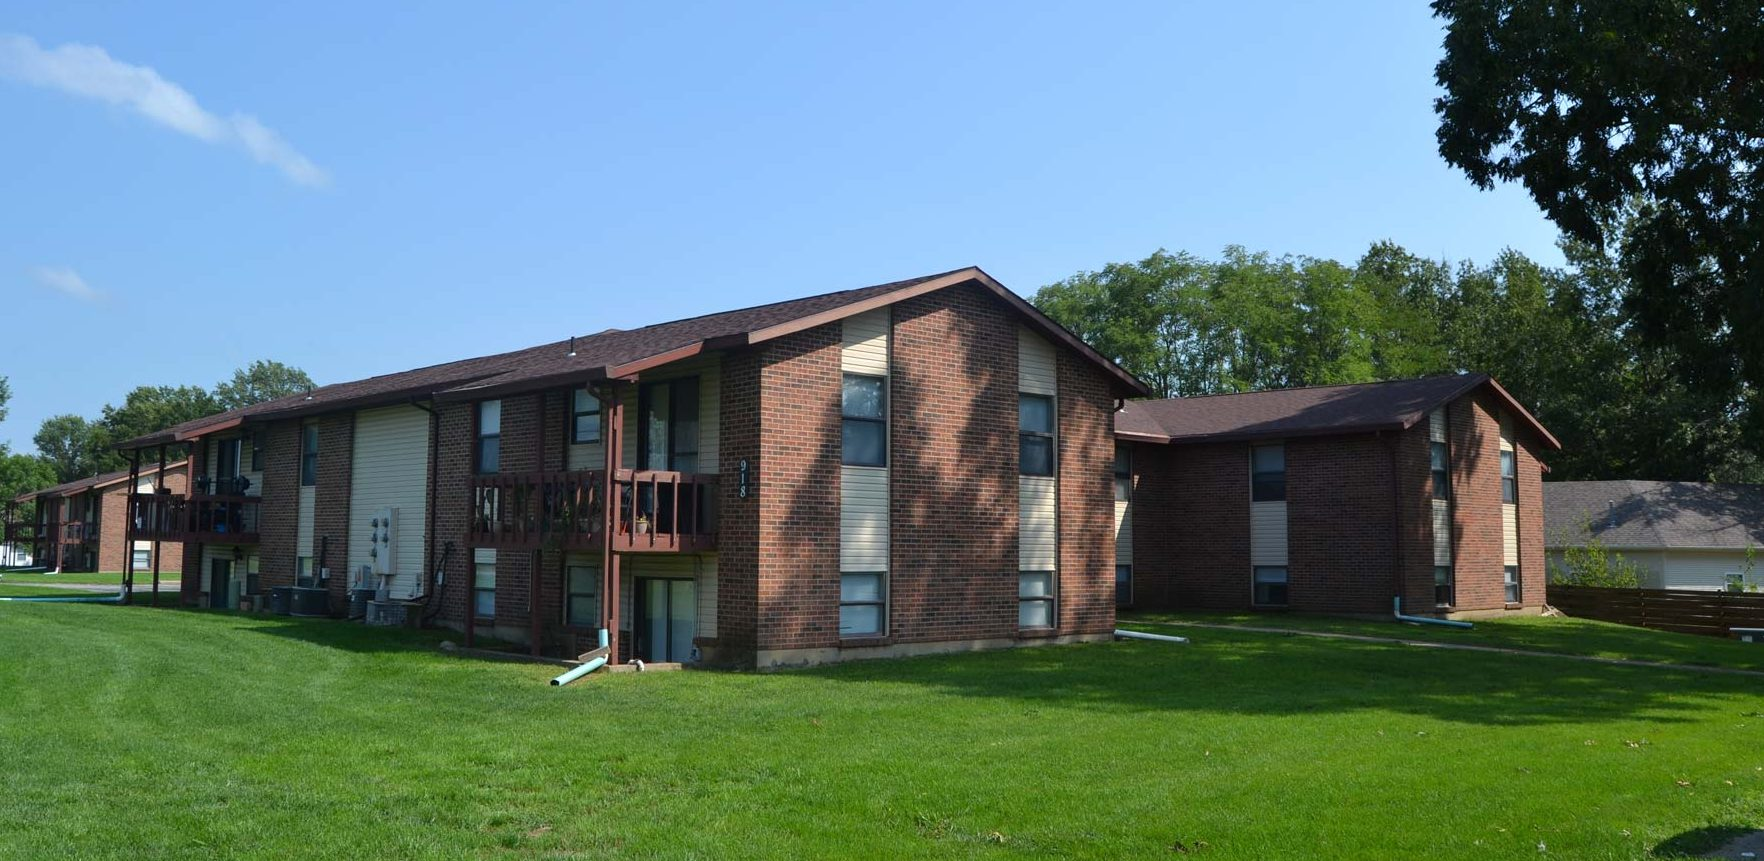 Central Christian College Of The Bible >> Off Campus Housing - Central Christian College of the Bible